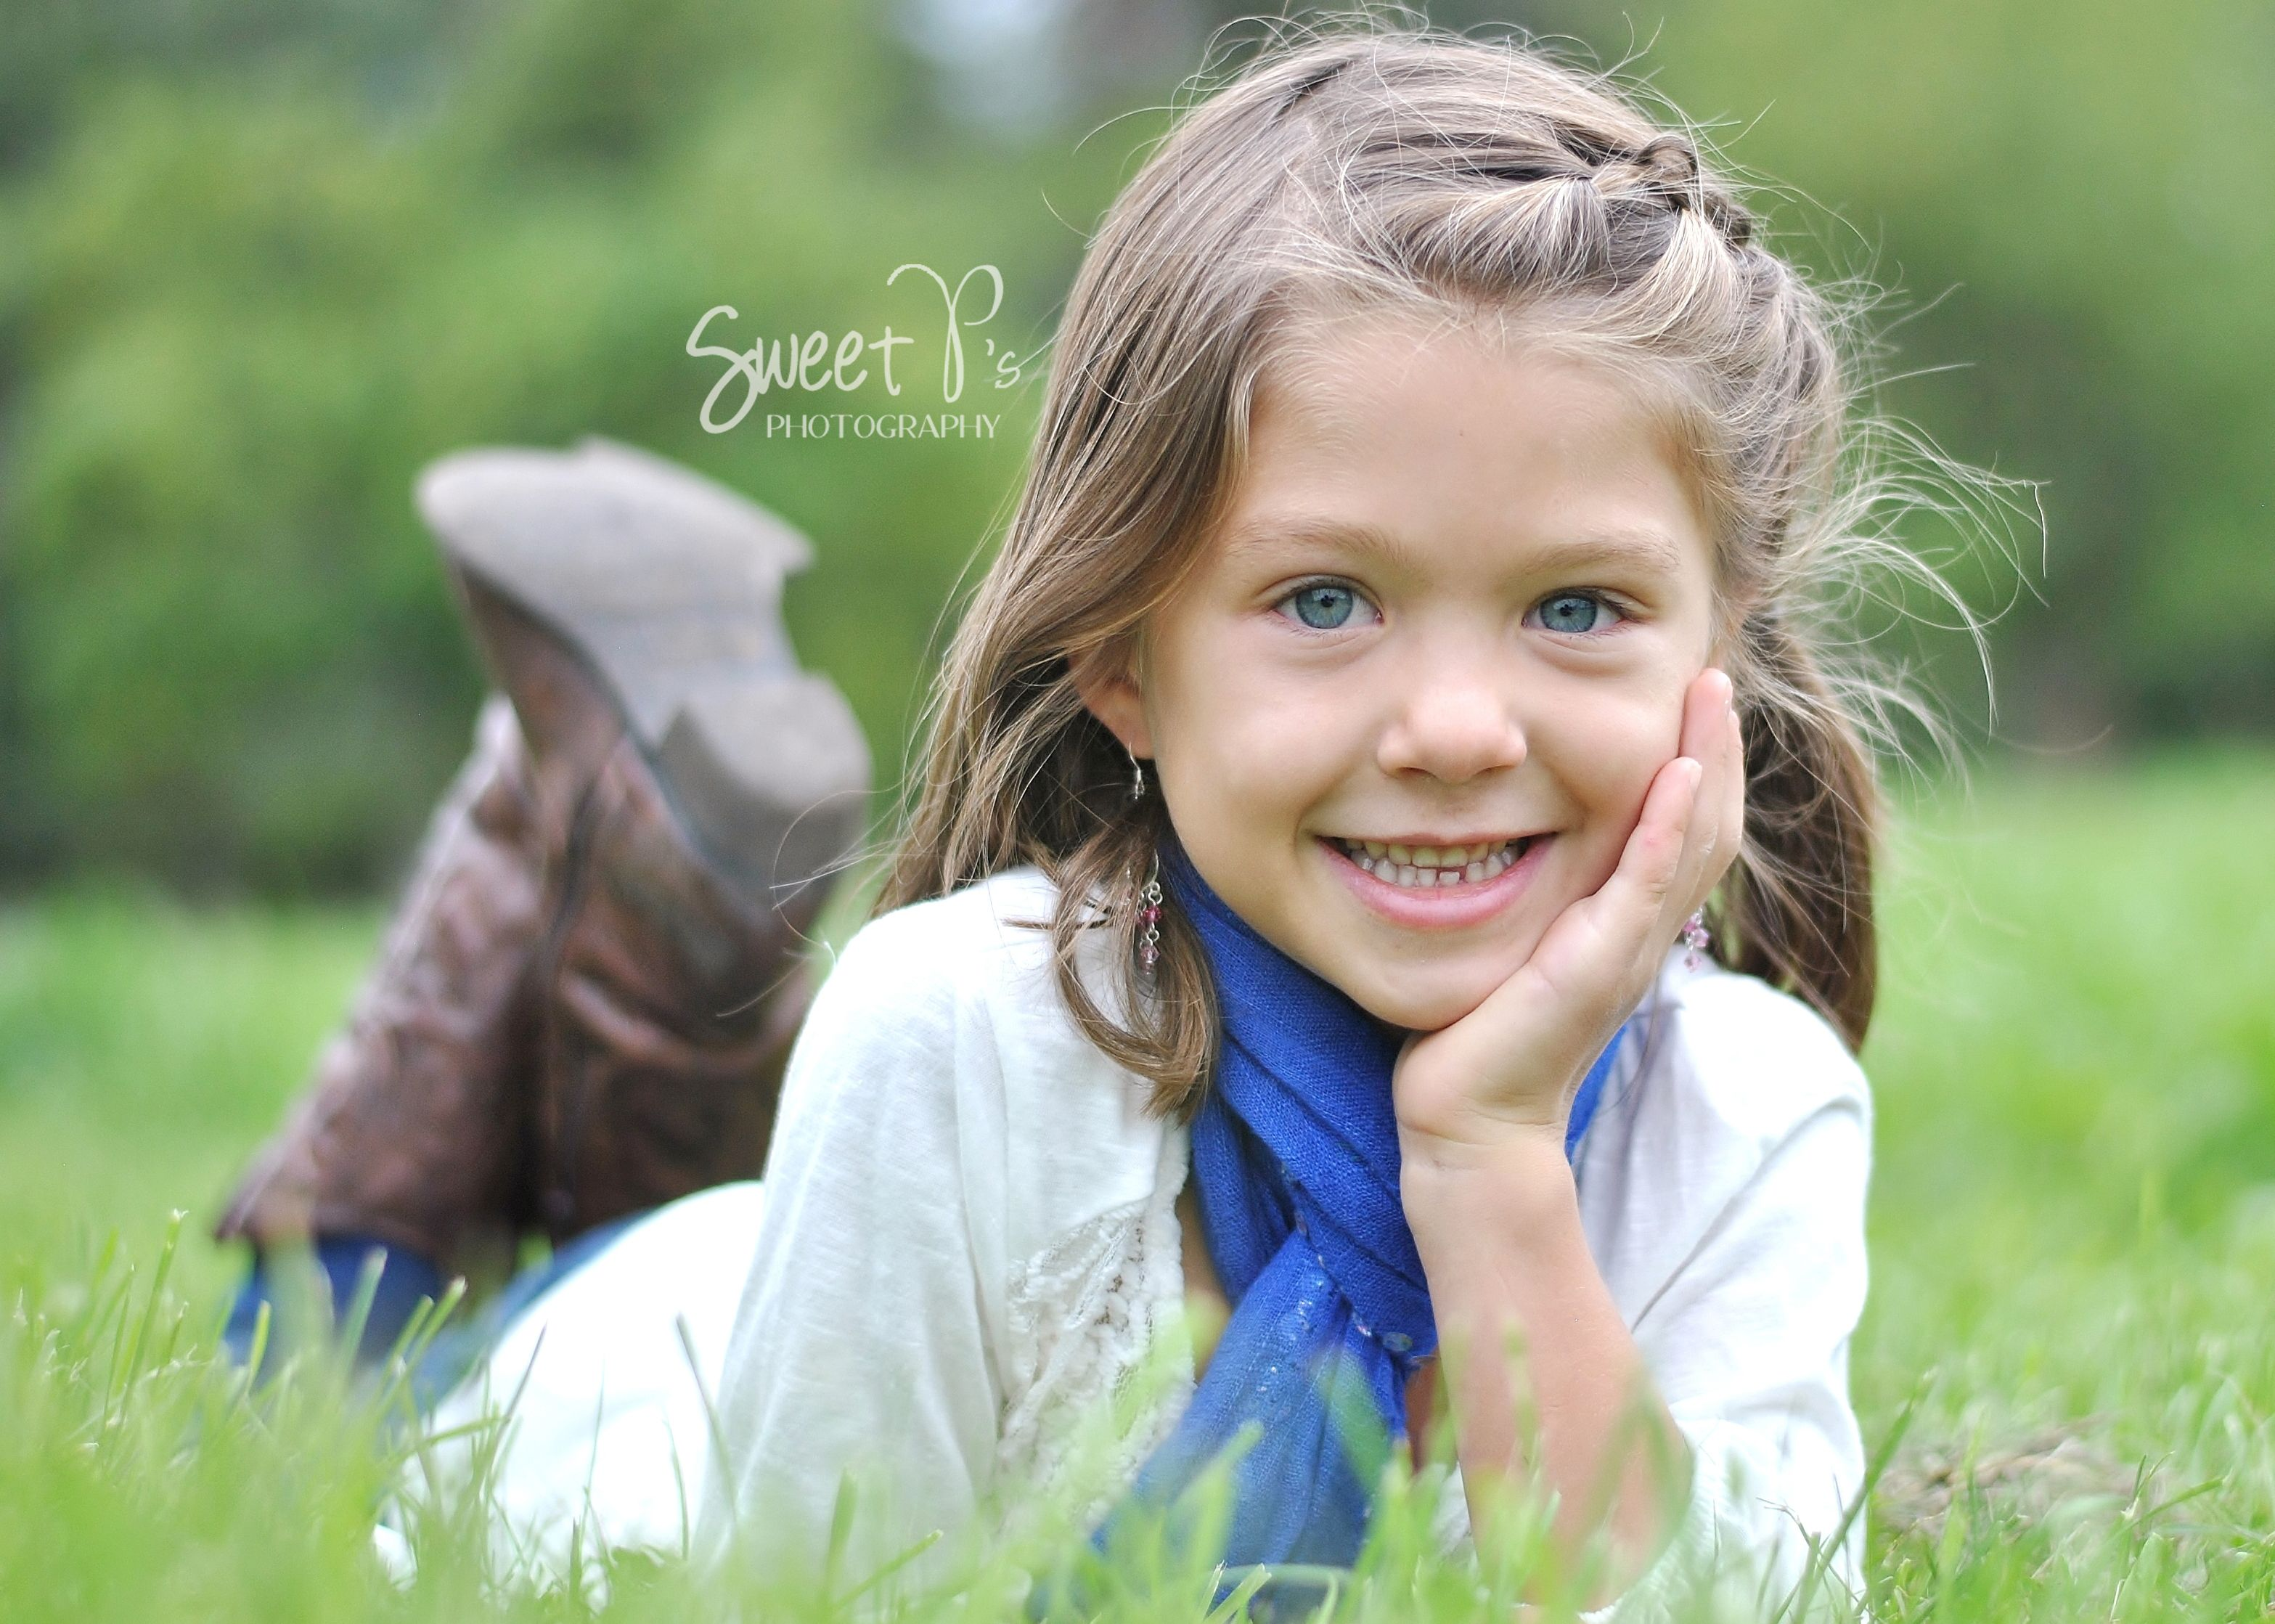 little kids fall photography poses sweet ps photography wny wwwsweetpsphotographywnycom - Picture Of Little Kids